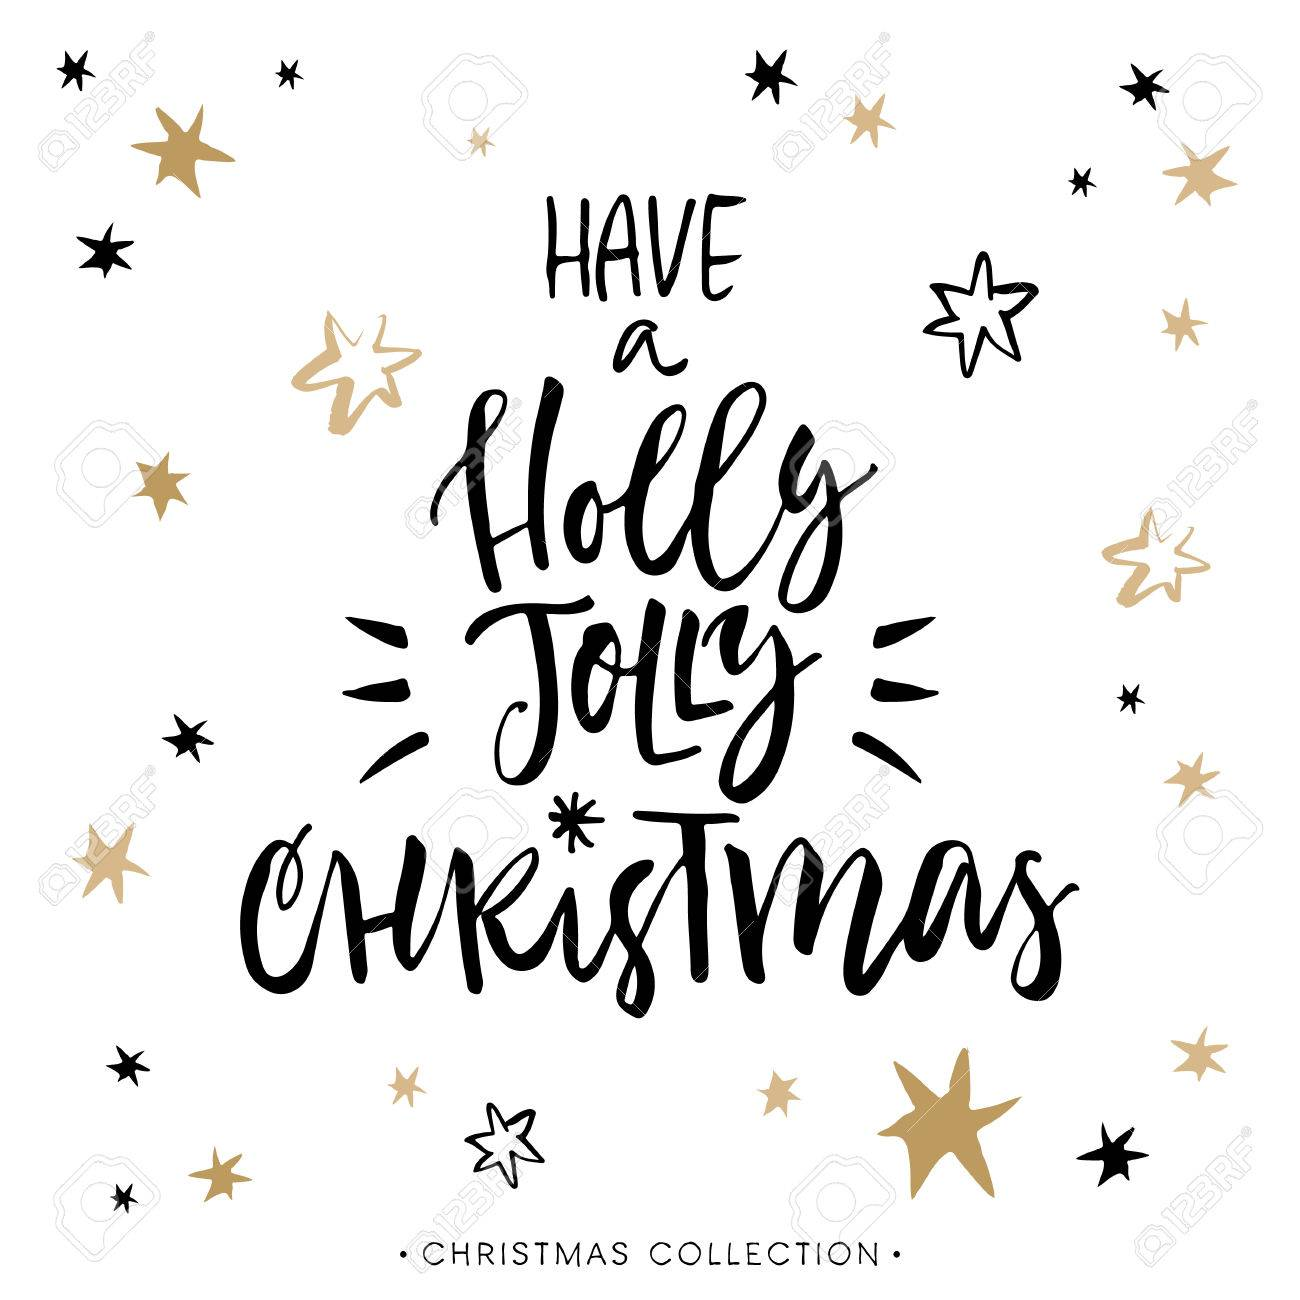 Have a Holly Jolly Christmas! Christmas greeting card with calligraphy. Handwritten modern brush lettering. Hand drawn design elements. - 49114656